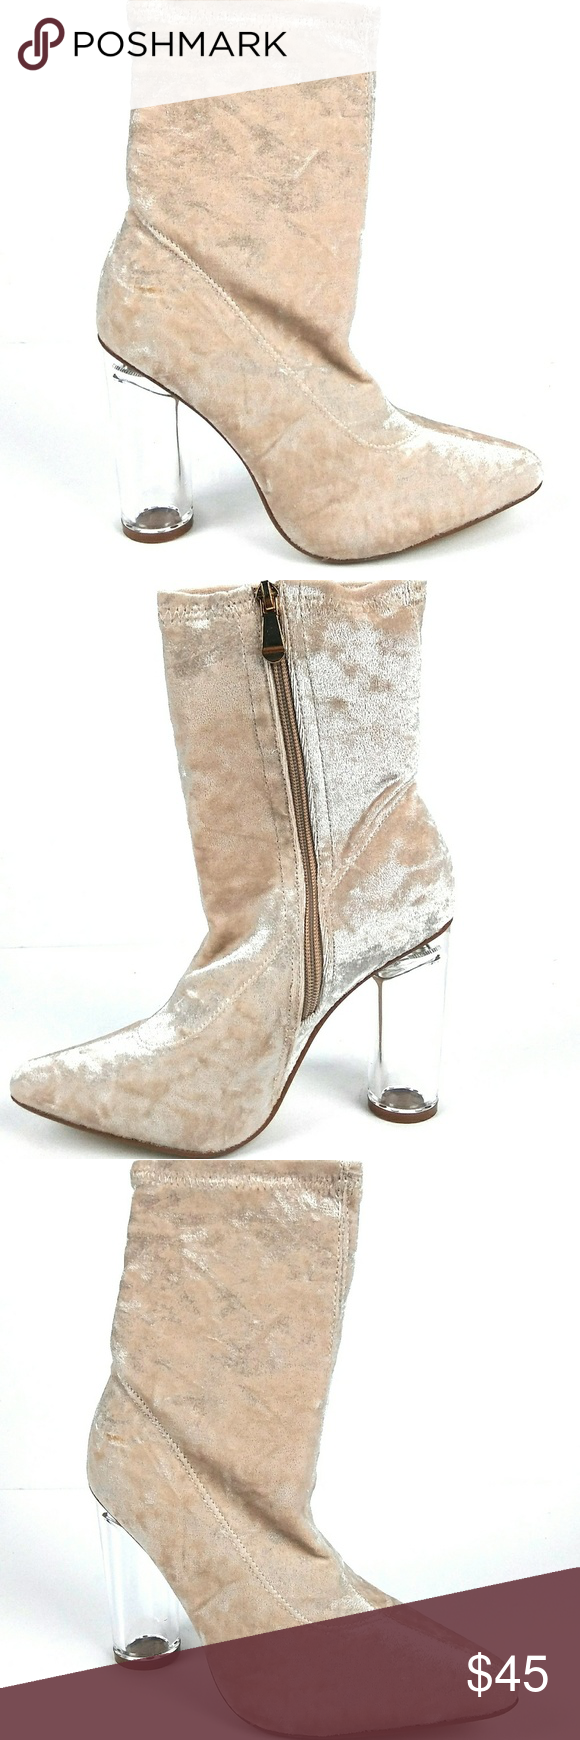 8a91ee42faa Nude Clear Chunky Heel Bootie New in box Super sexy Crushed Velvet Nude  color Clear chunky heel Heel Height  4in Shoes Ankle Boots   Booties